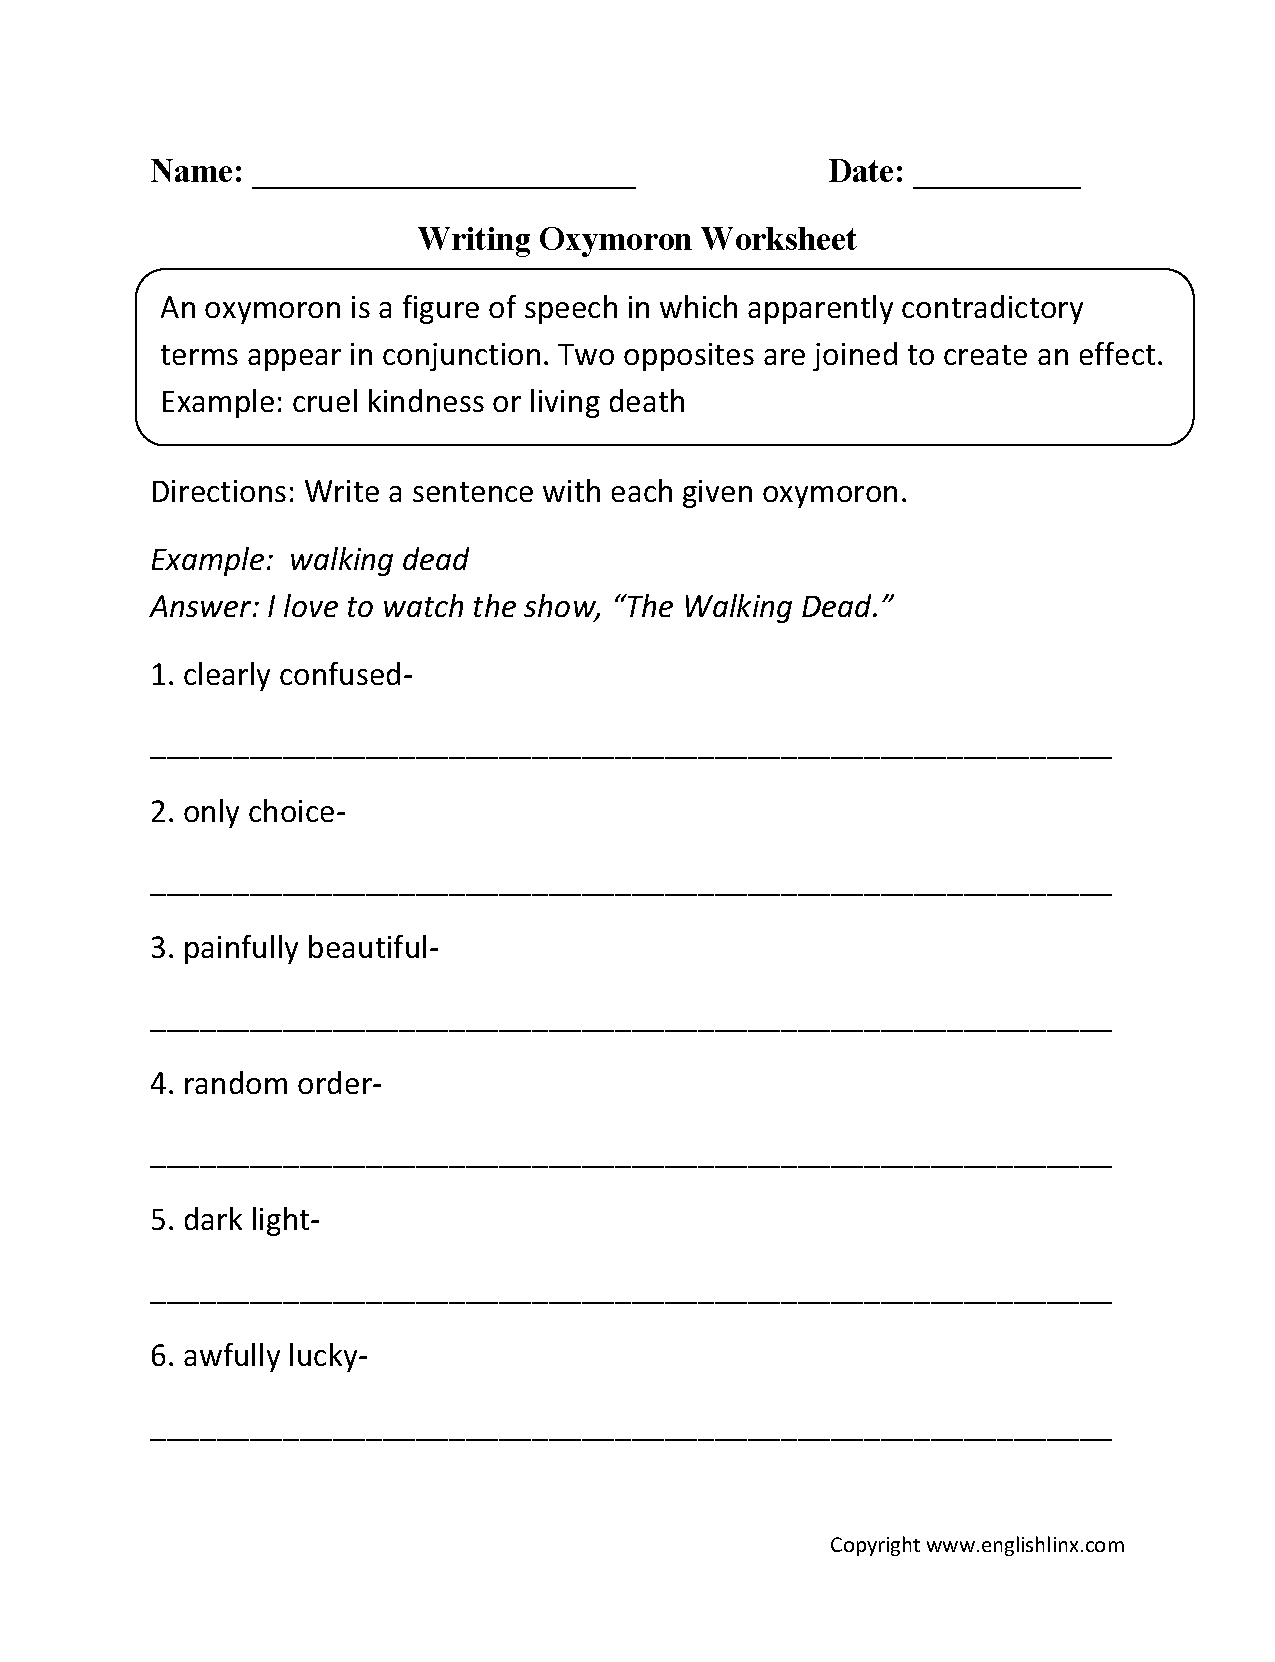 worksheet Oxymoron Worksheet figurative language worksheets oxymoron writing with worksheet word sounds onomatopoeia worksheet